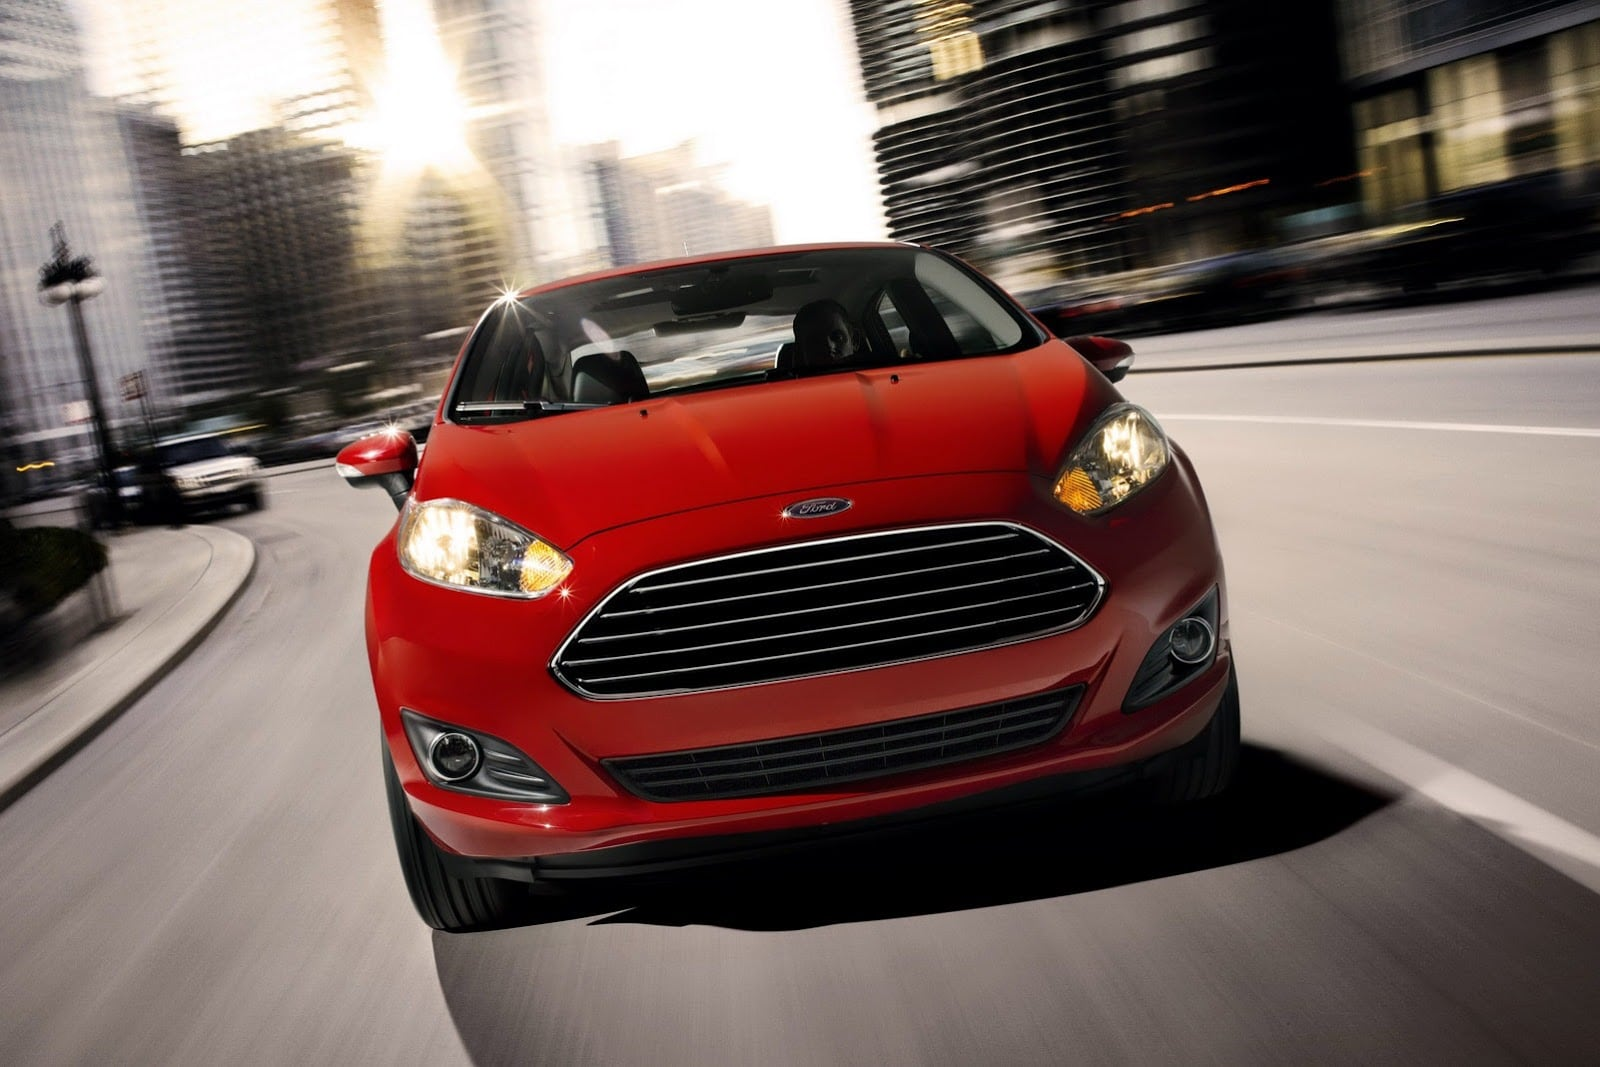 Ford Fiesta 2014 India  Price  Review  Images